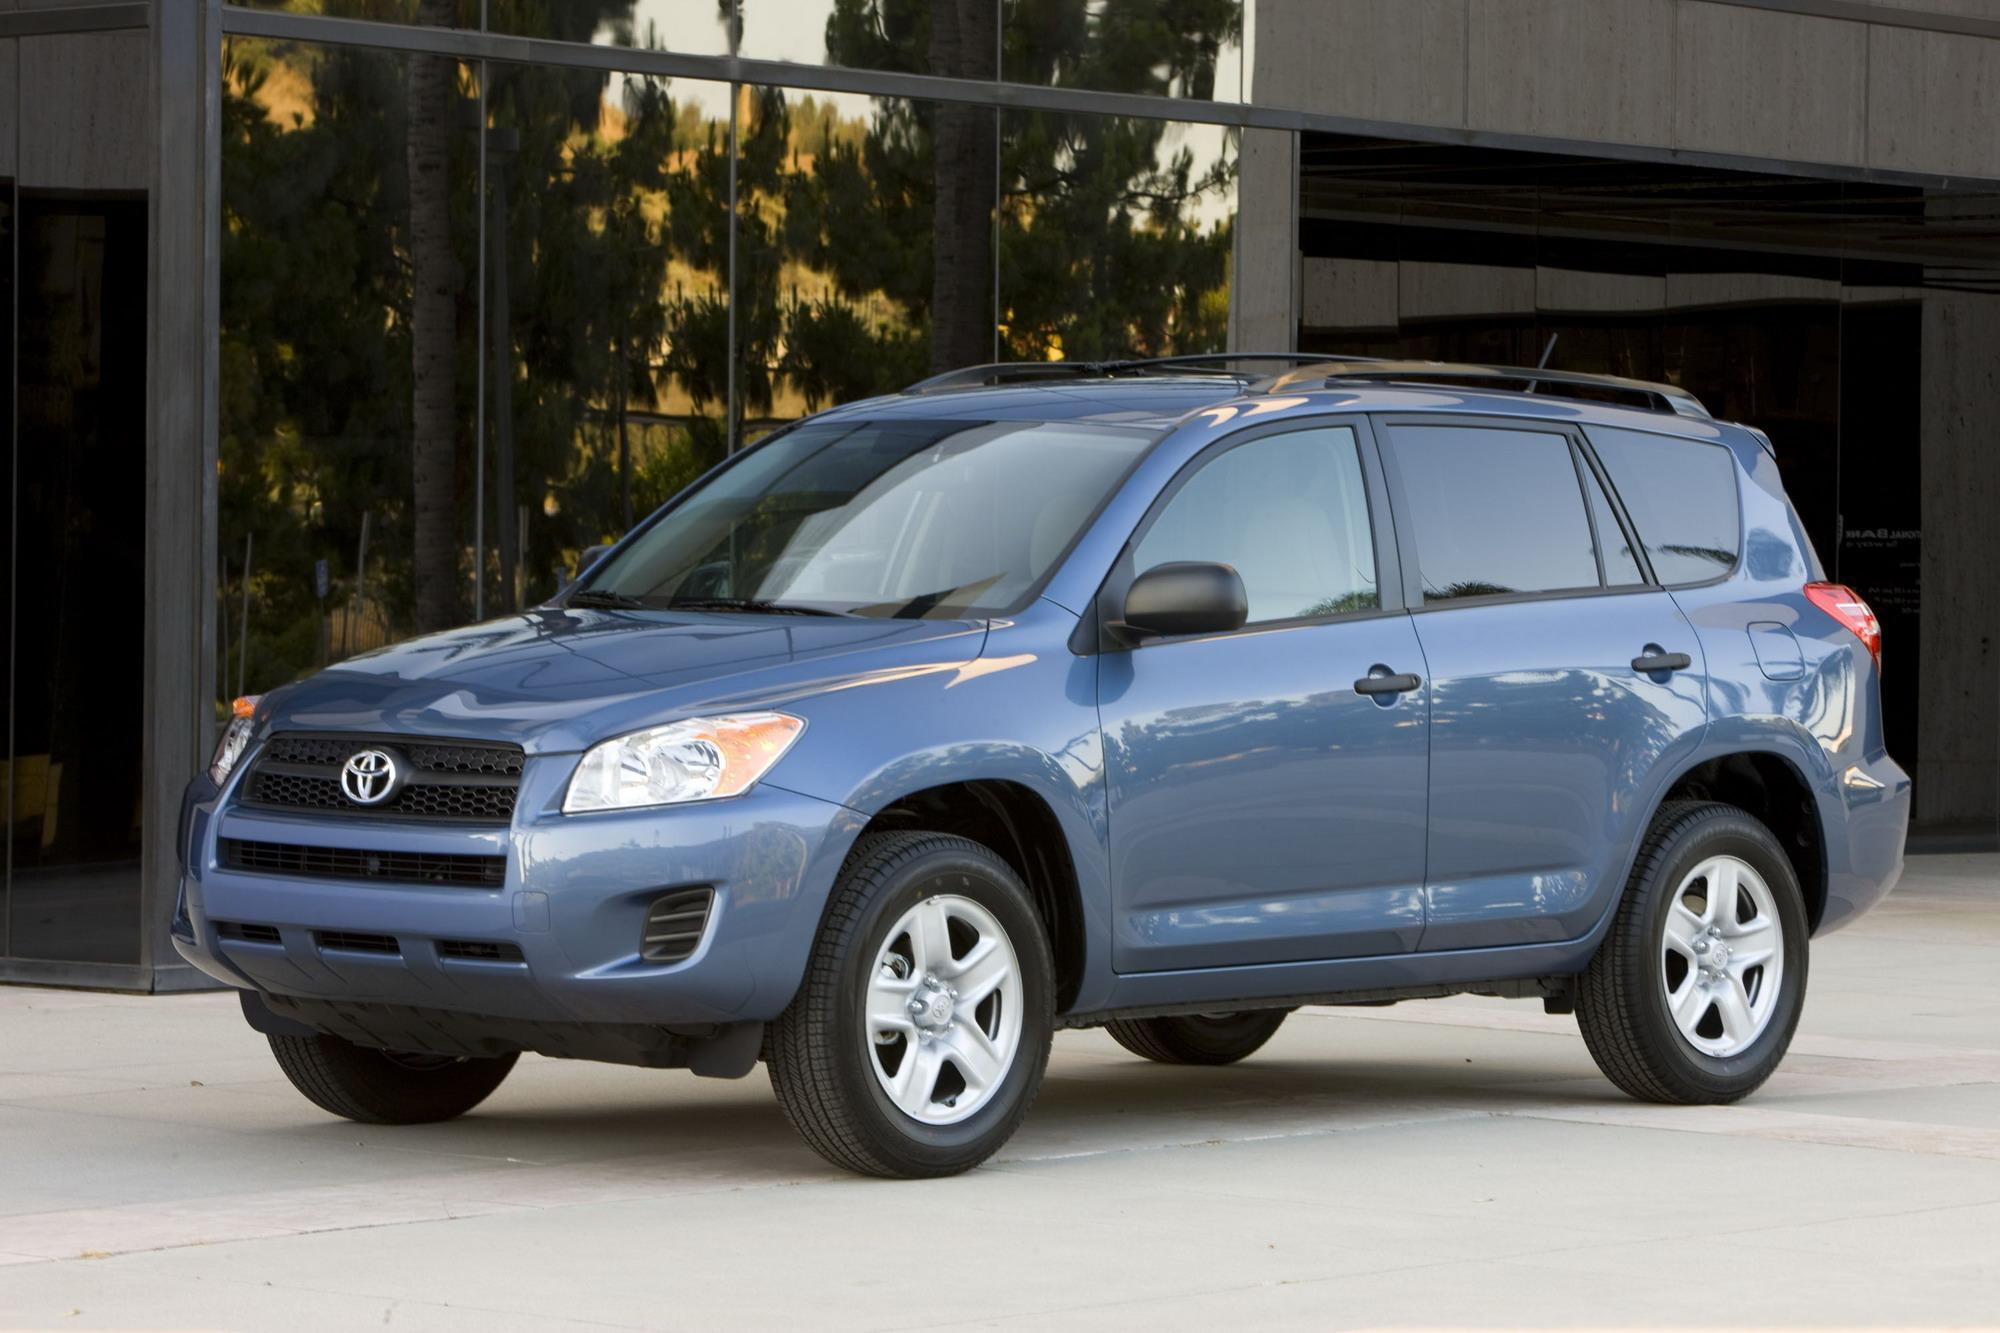 2010 Toyota RAV4 | Top Speed